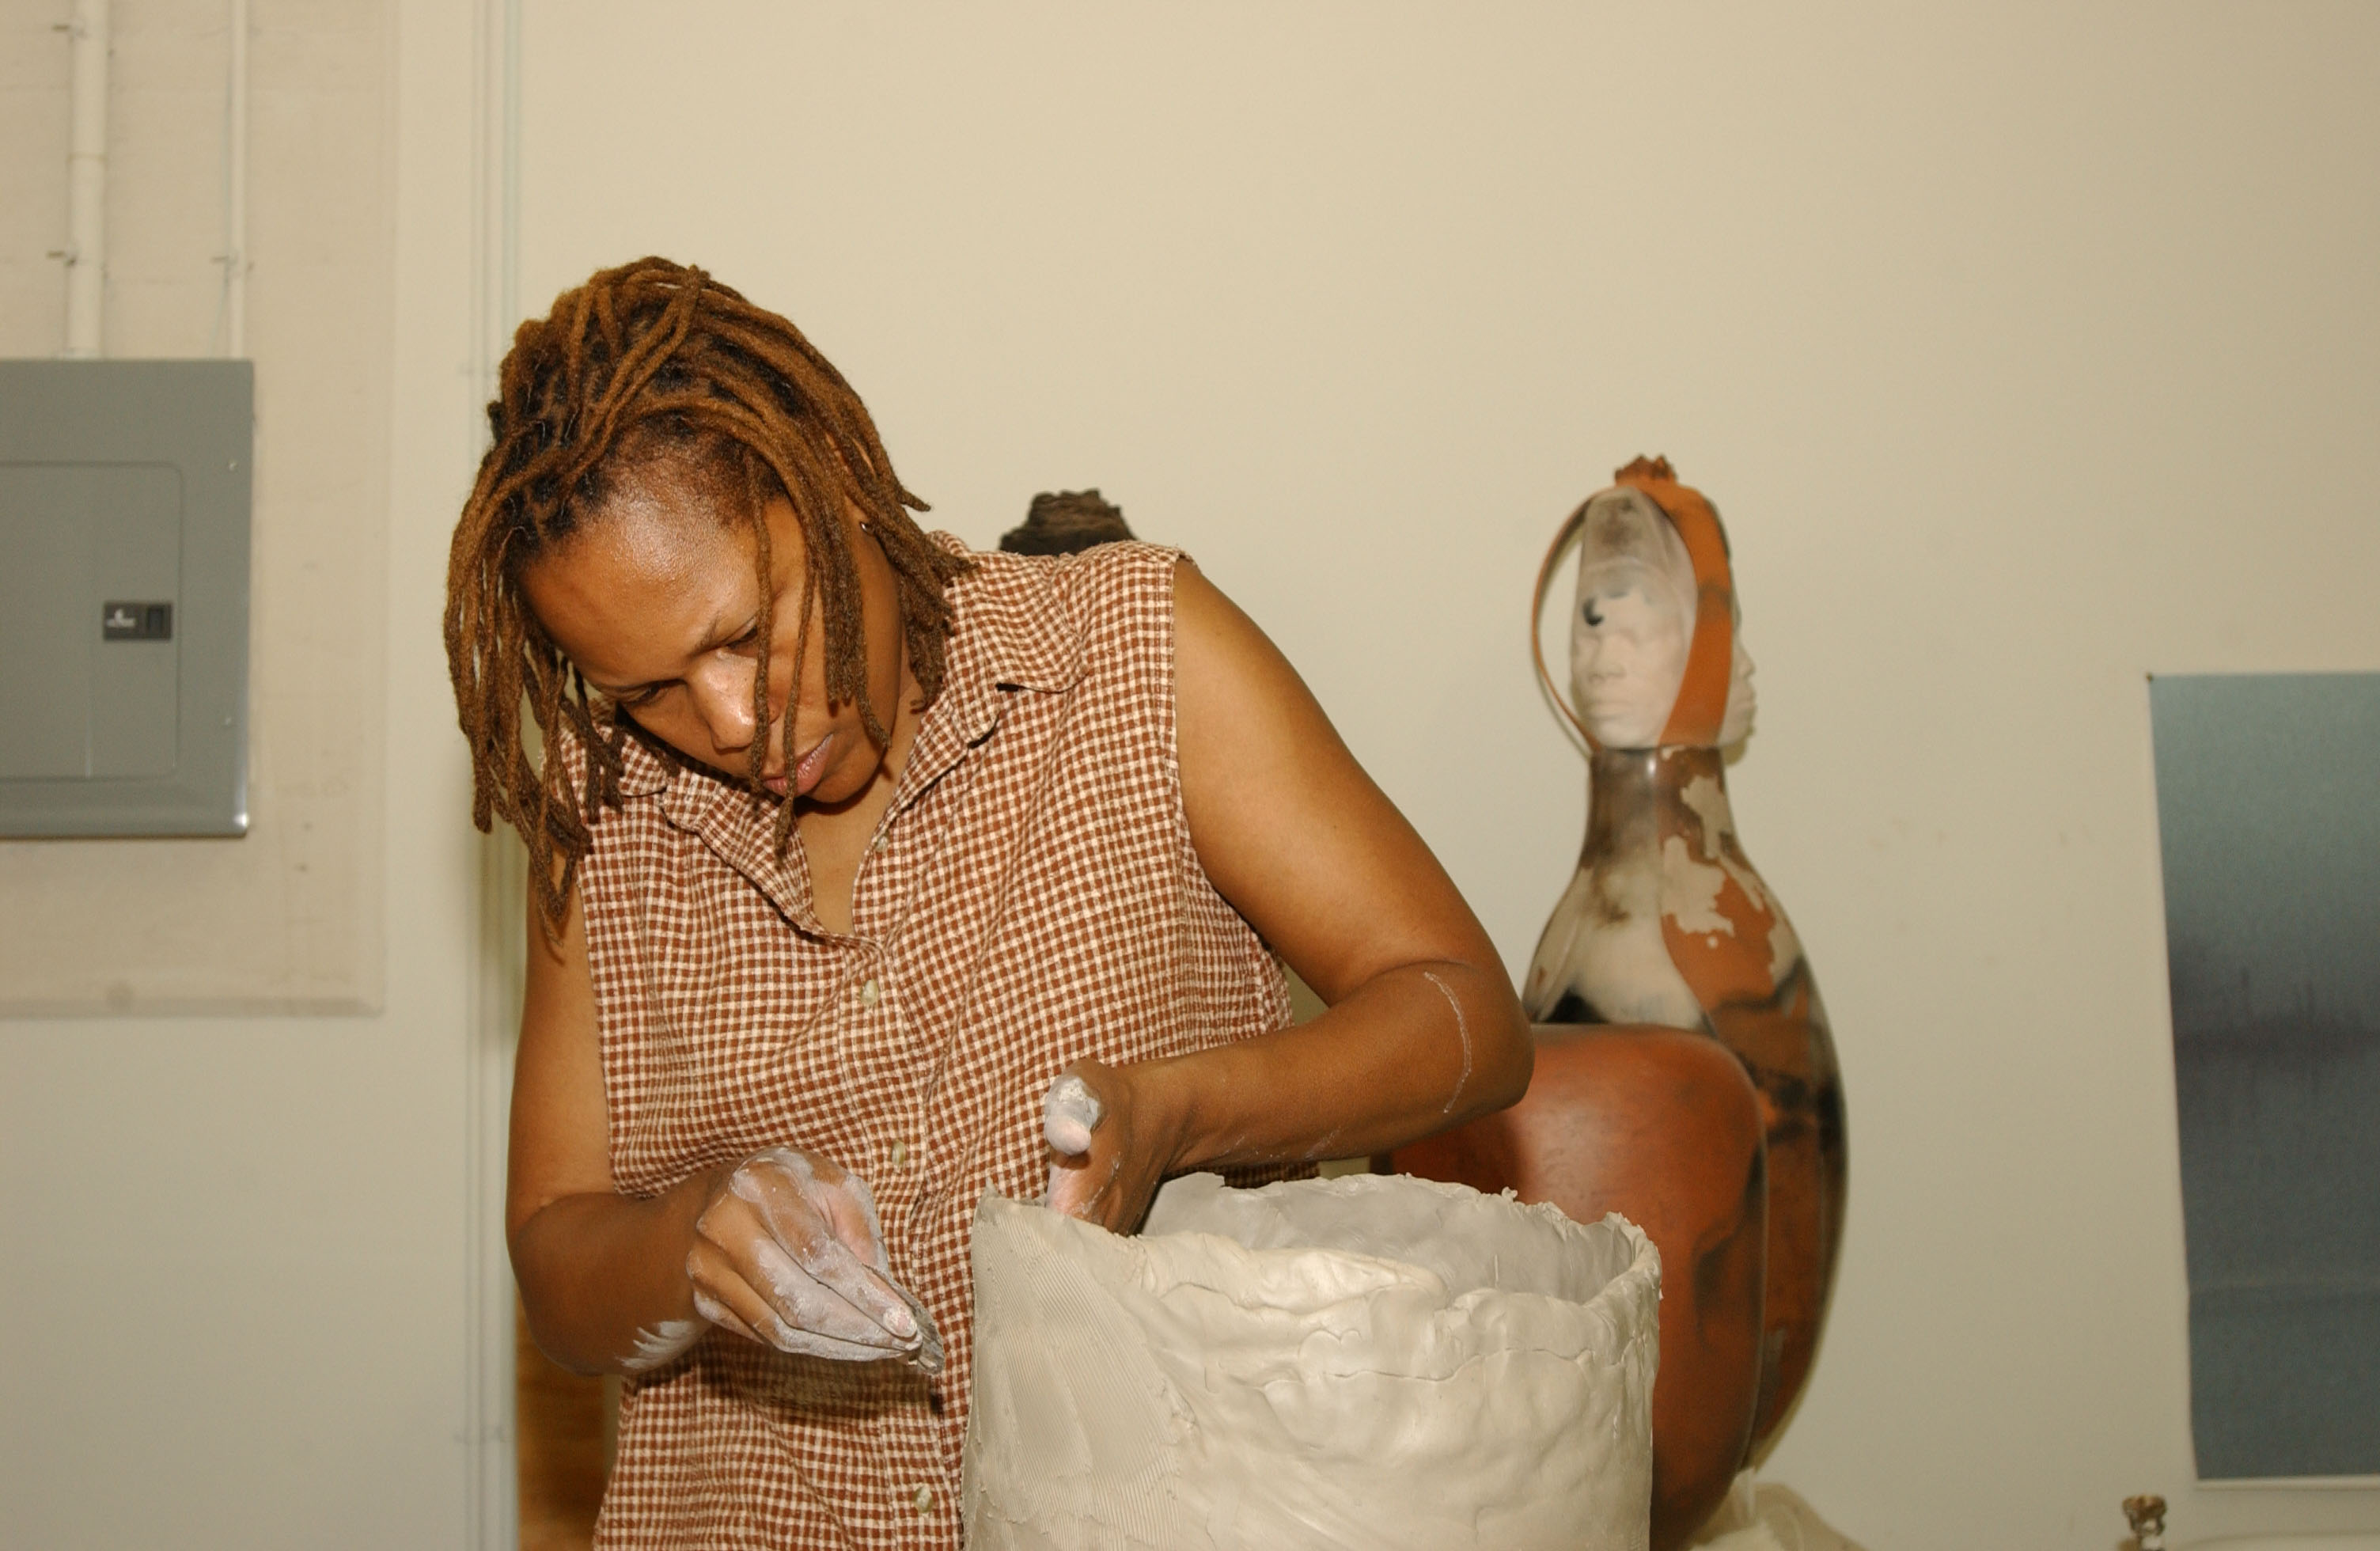 Varnell works on a clay project in a studio.